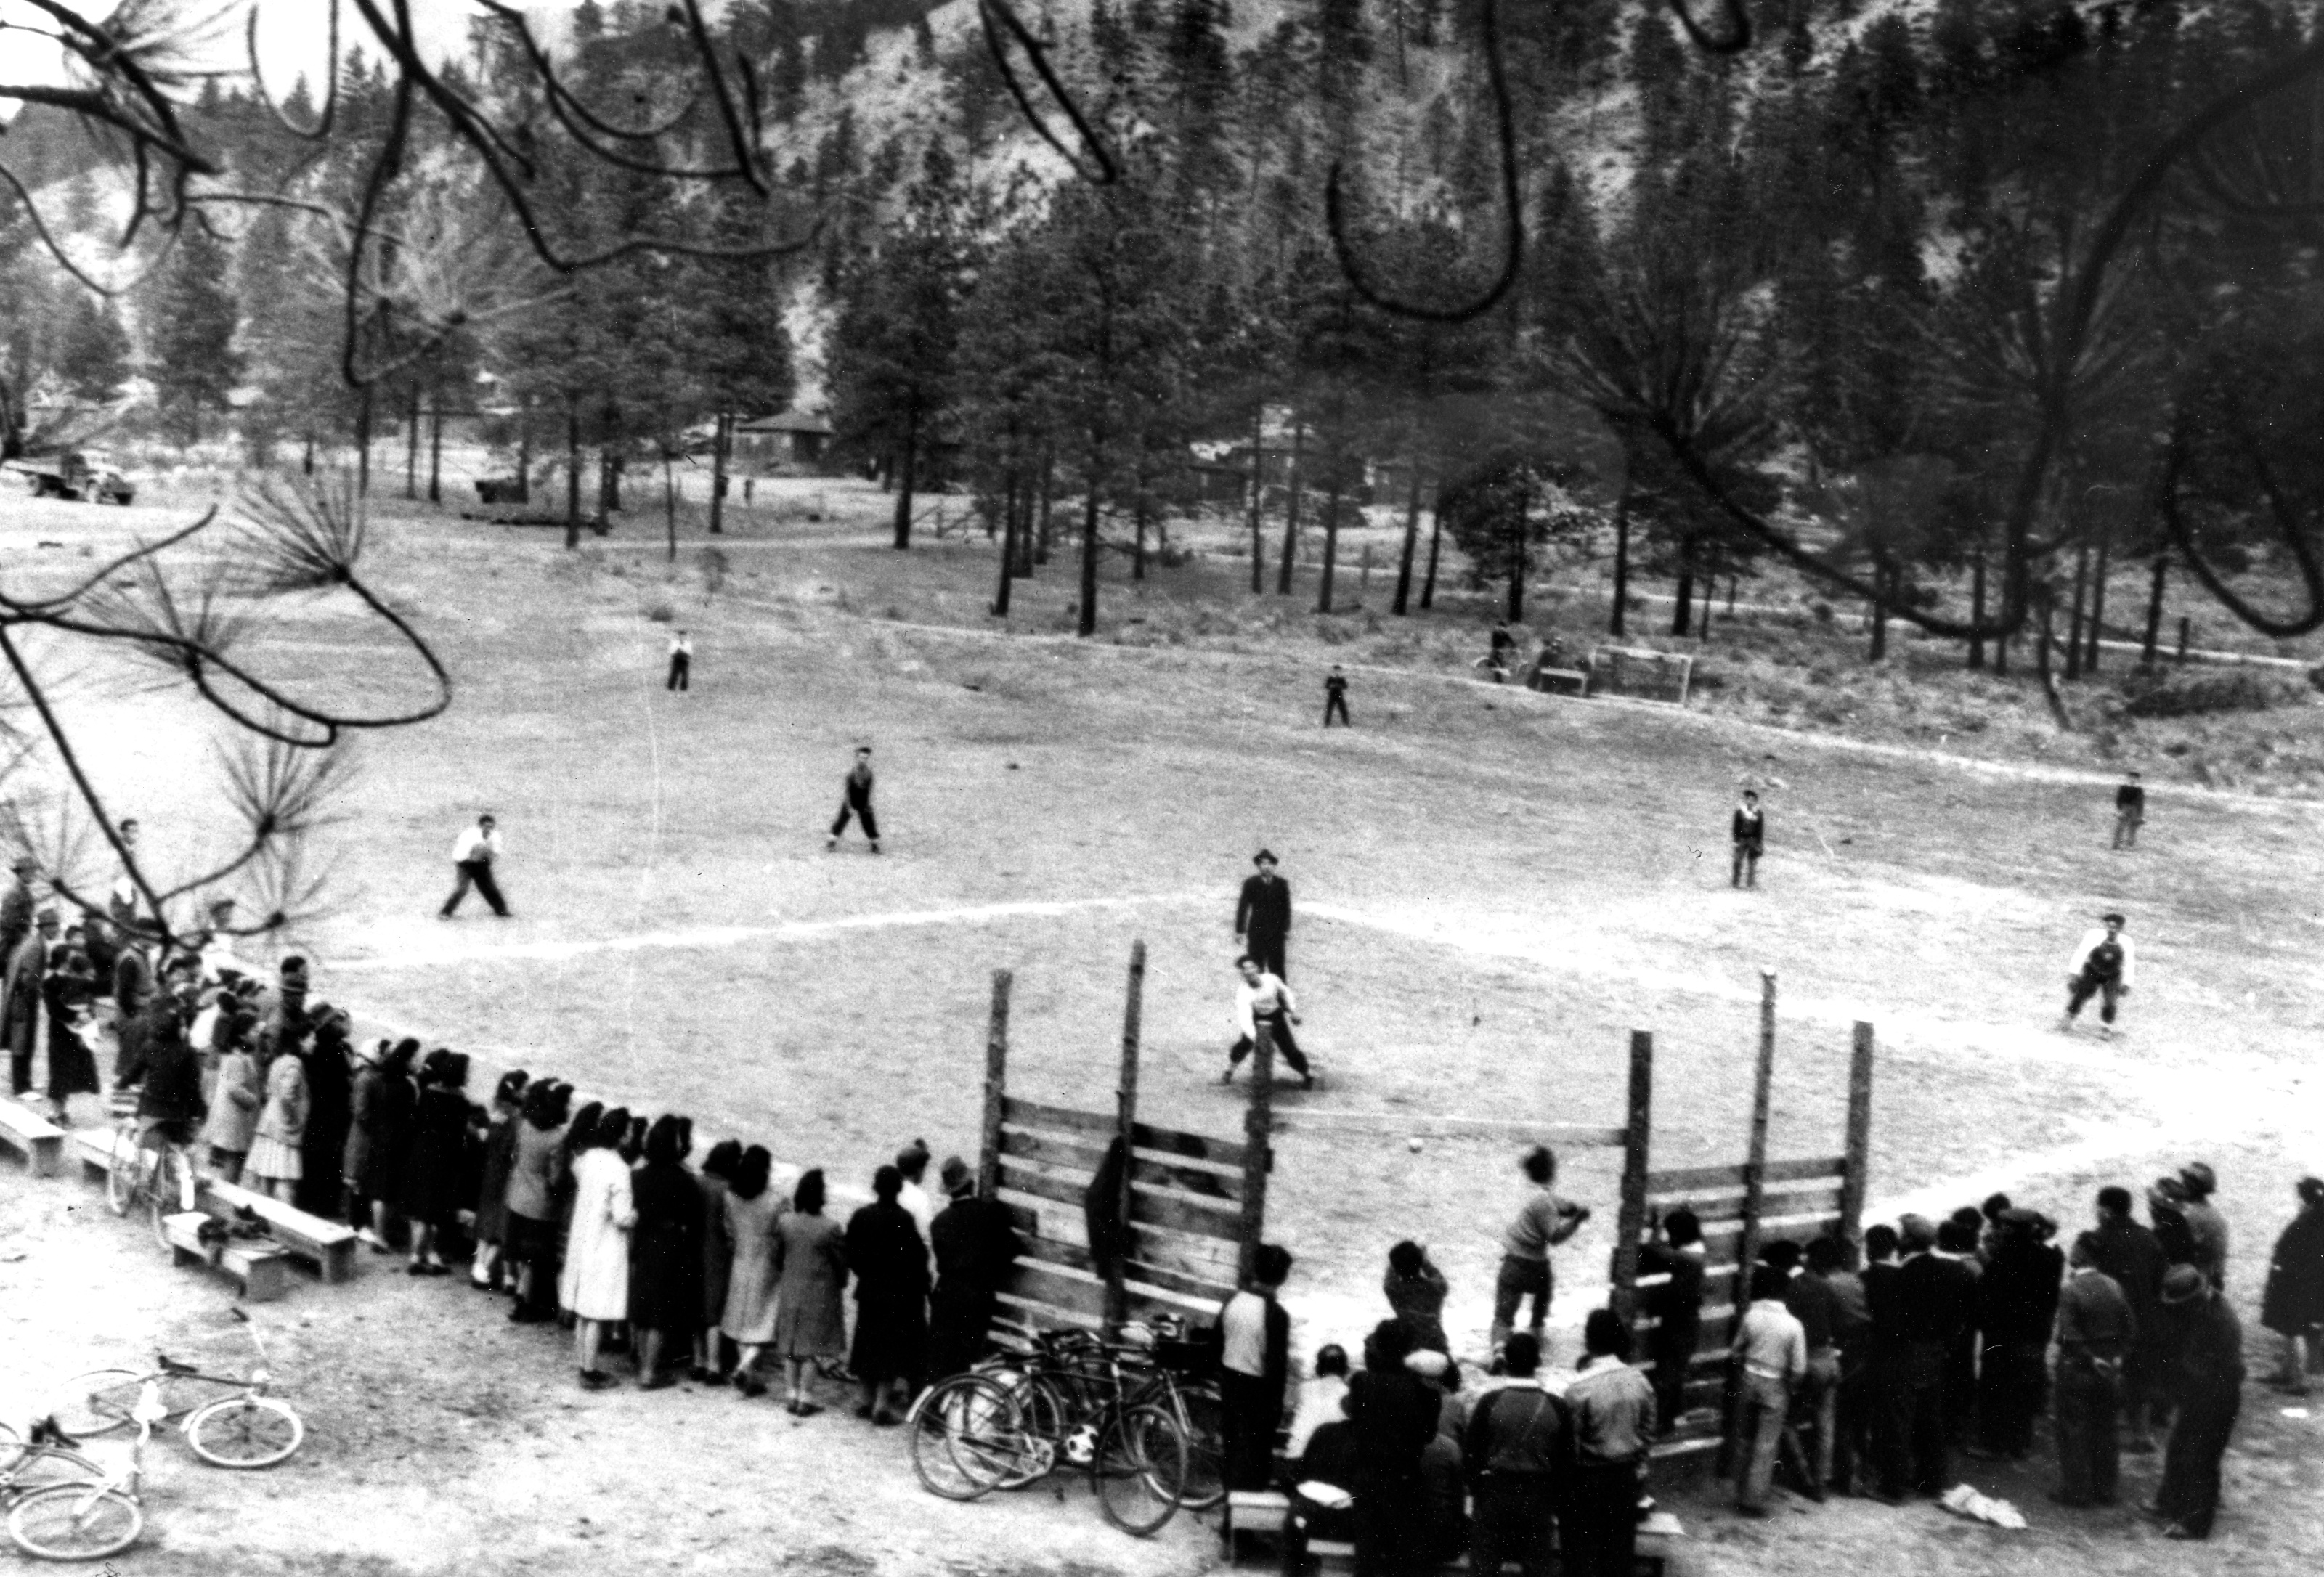 Softball Game, East Lillooet